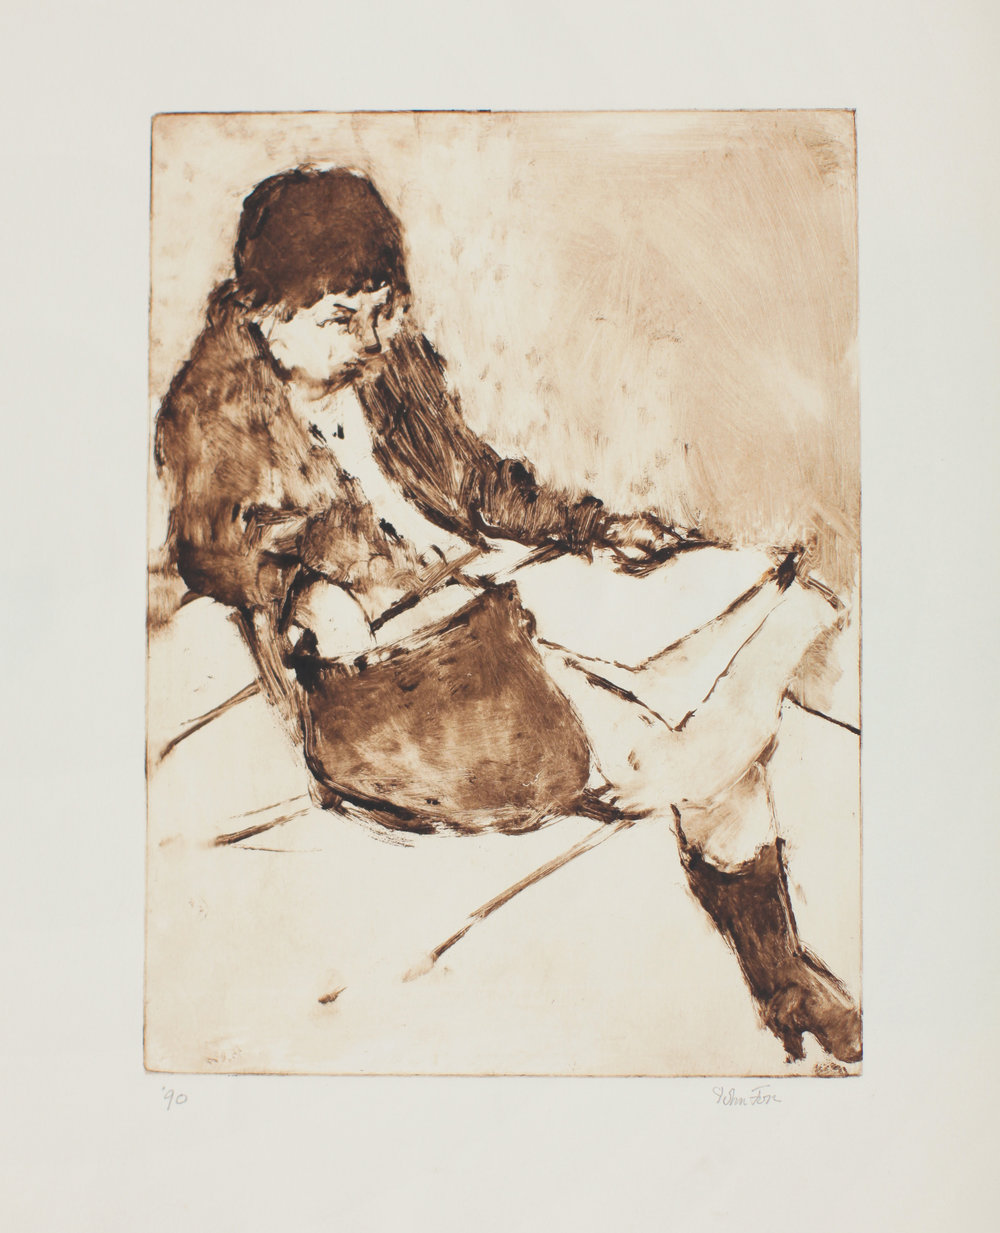 1990_Sandra_Reading_Newspaper_(dark_coat)_monotype_on_paper_17x15in_image_12x9in_WPF435.jpg